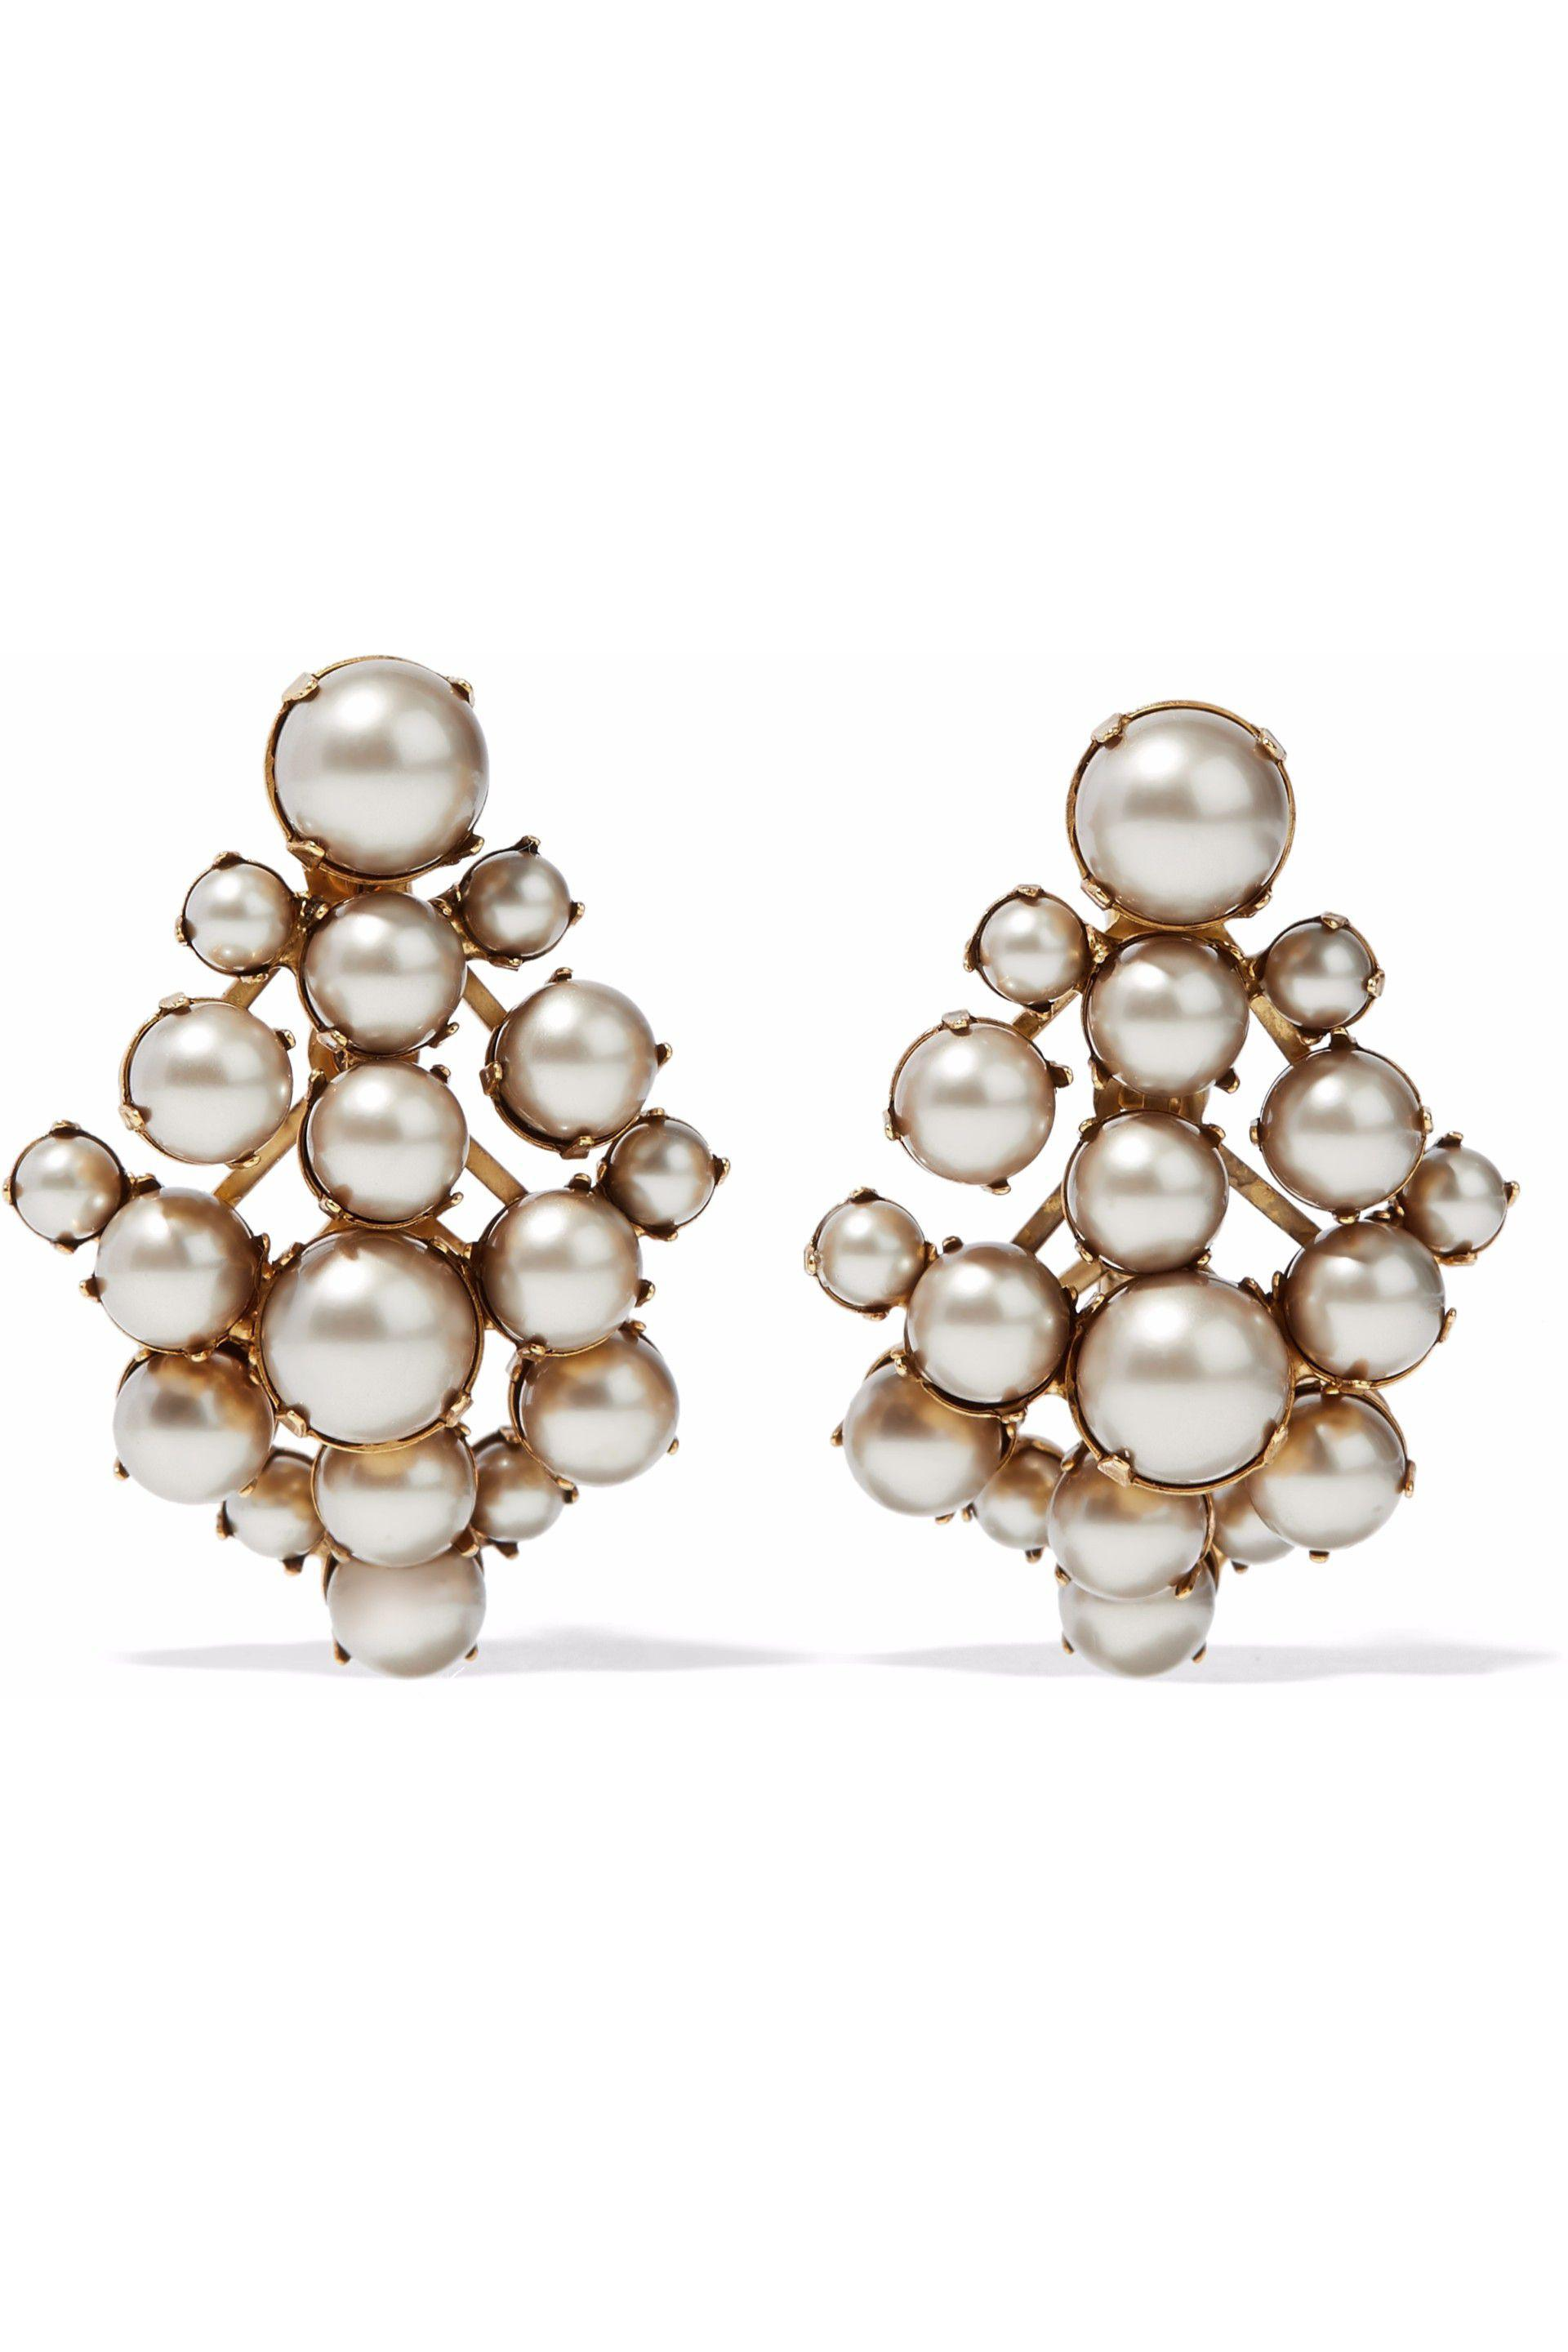 jewelry pearl realreal the chanel earrings faux enlarged products cc stud